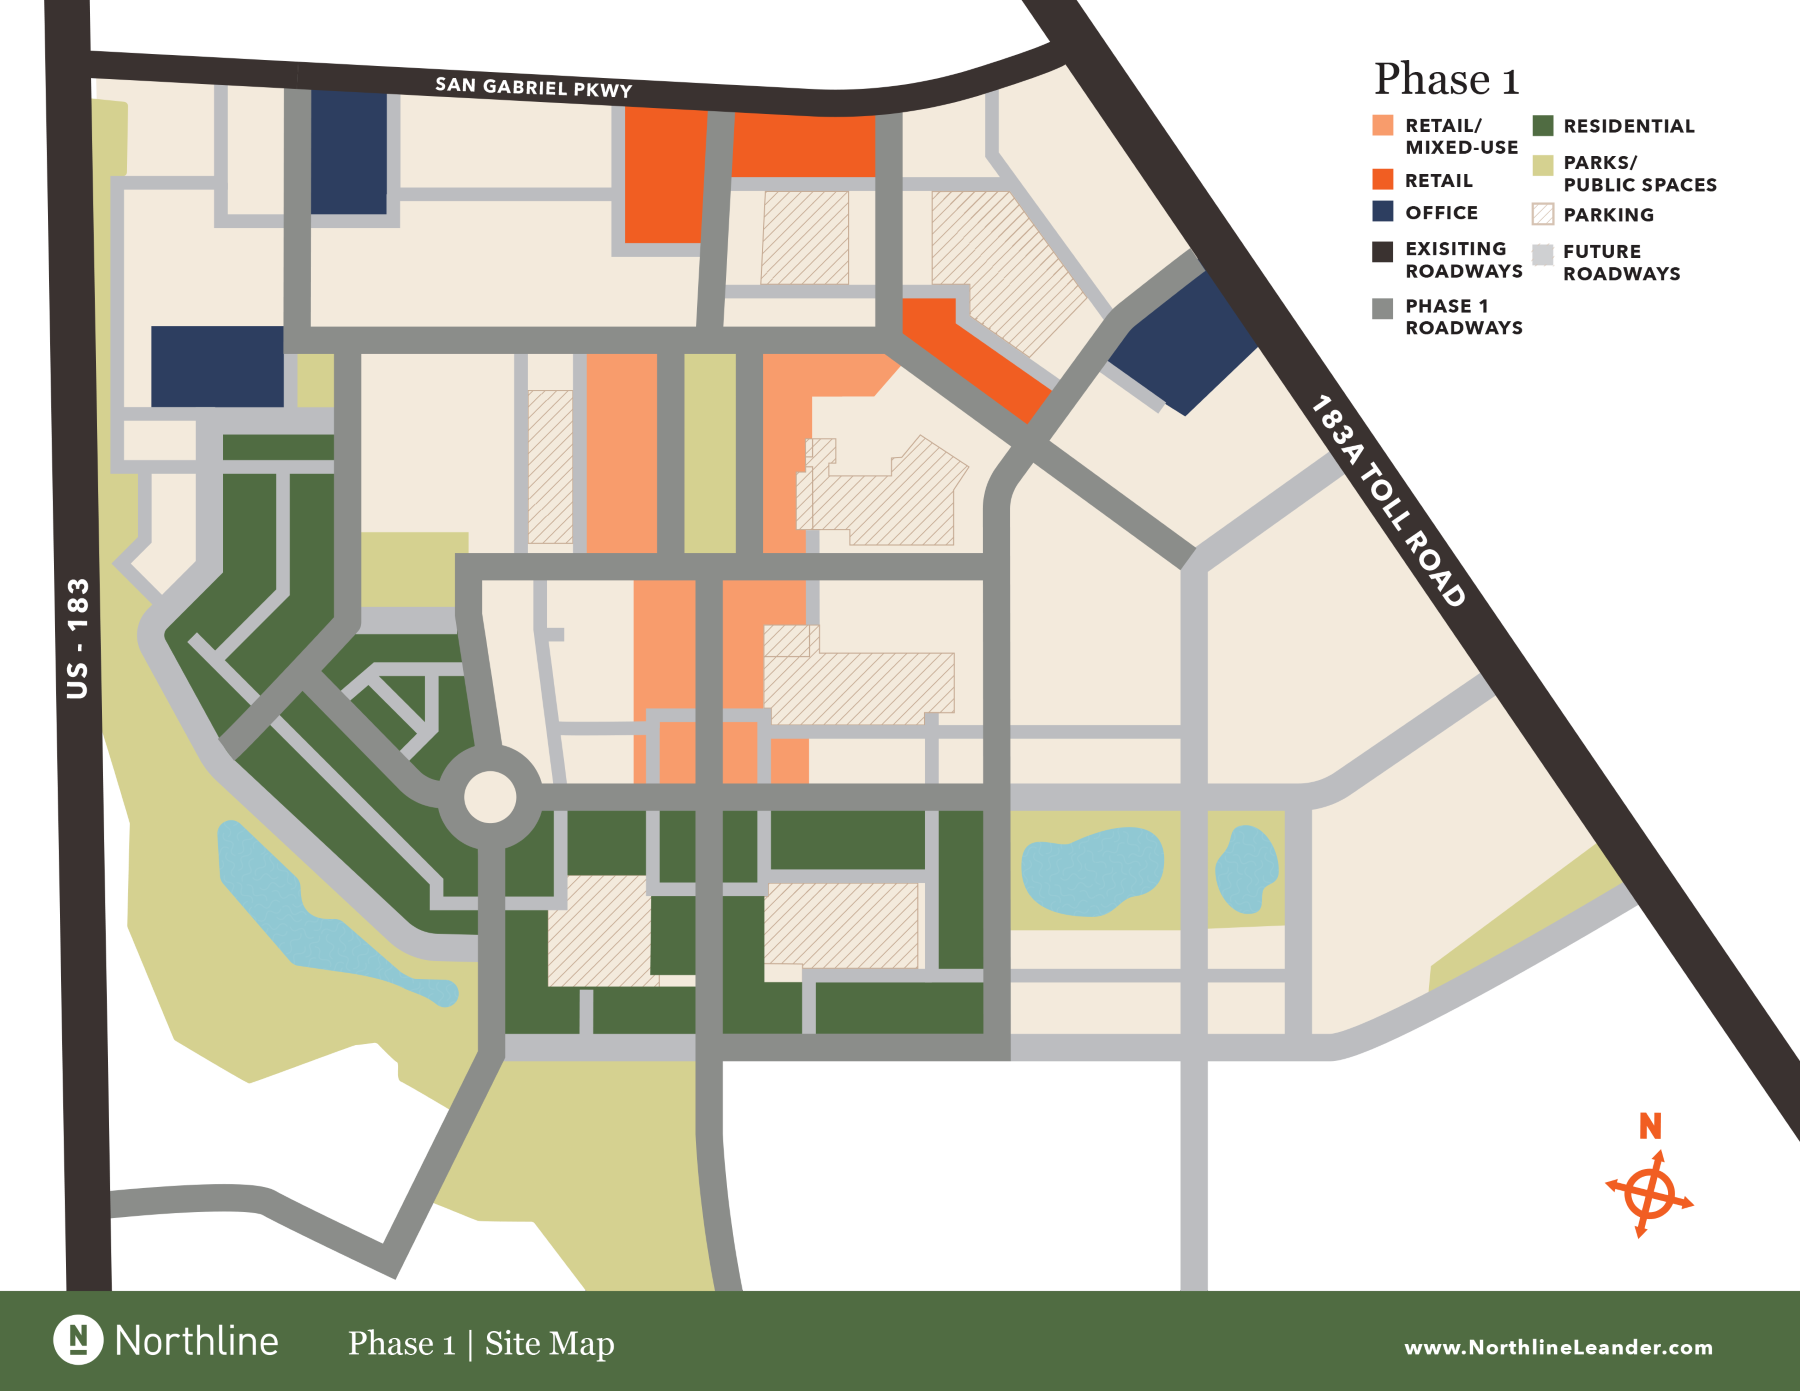 Northline Phase 1 Site Map